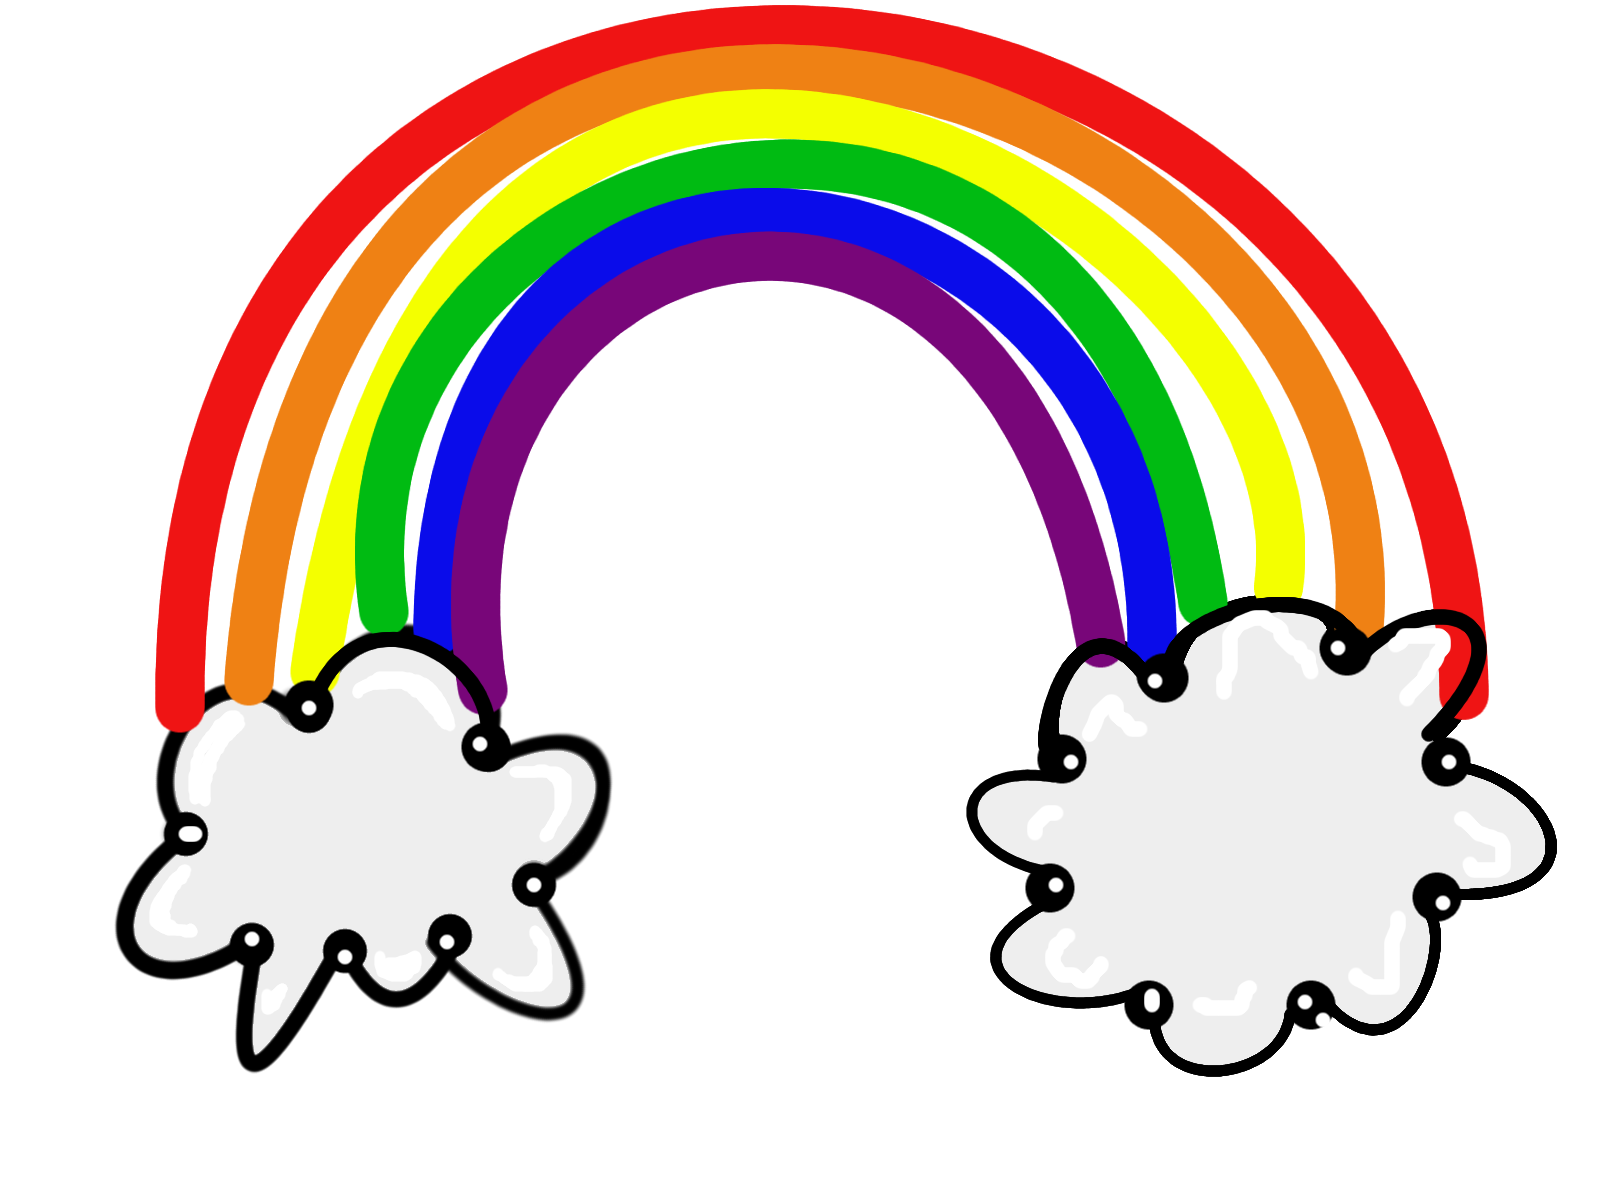 Rainbow colors clipart.